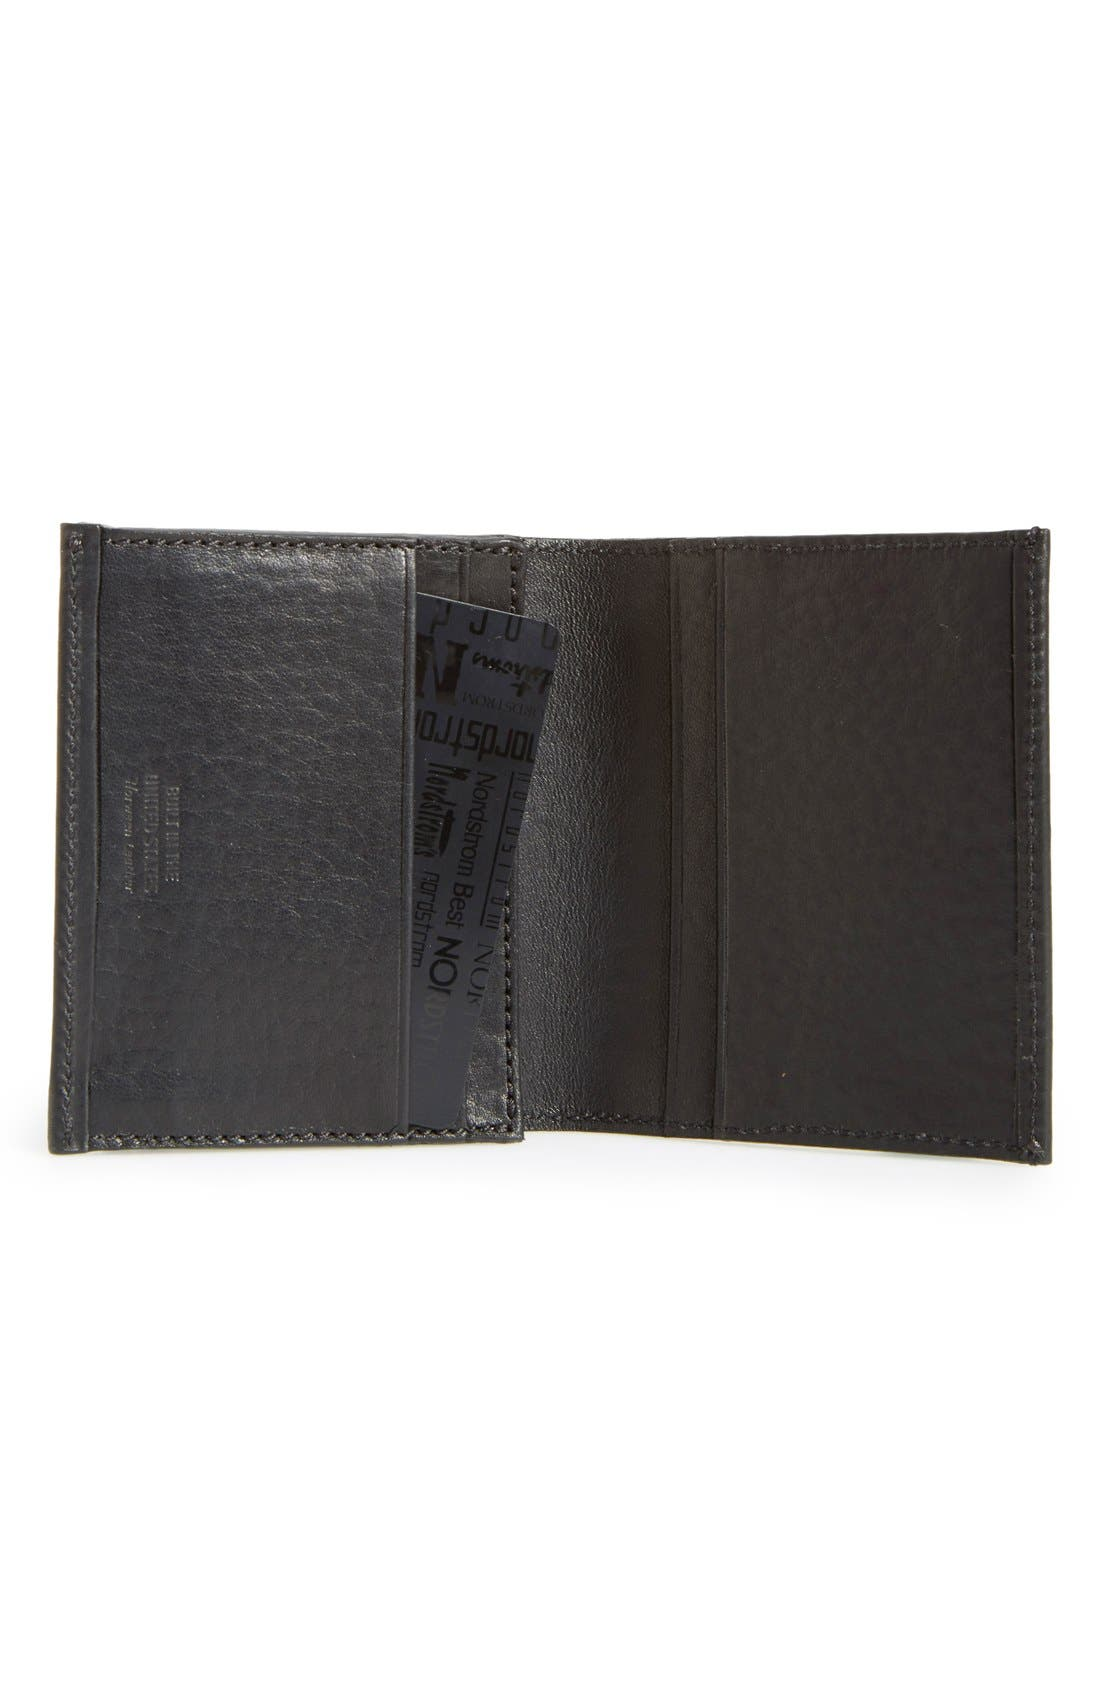 Gusset Leather Card Case,                             Alternate thumbnail 2, color,                             001